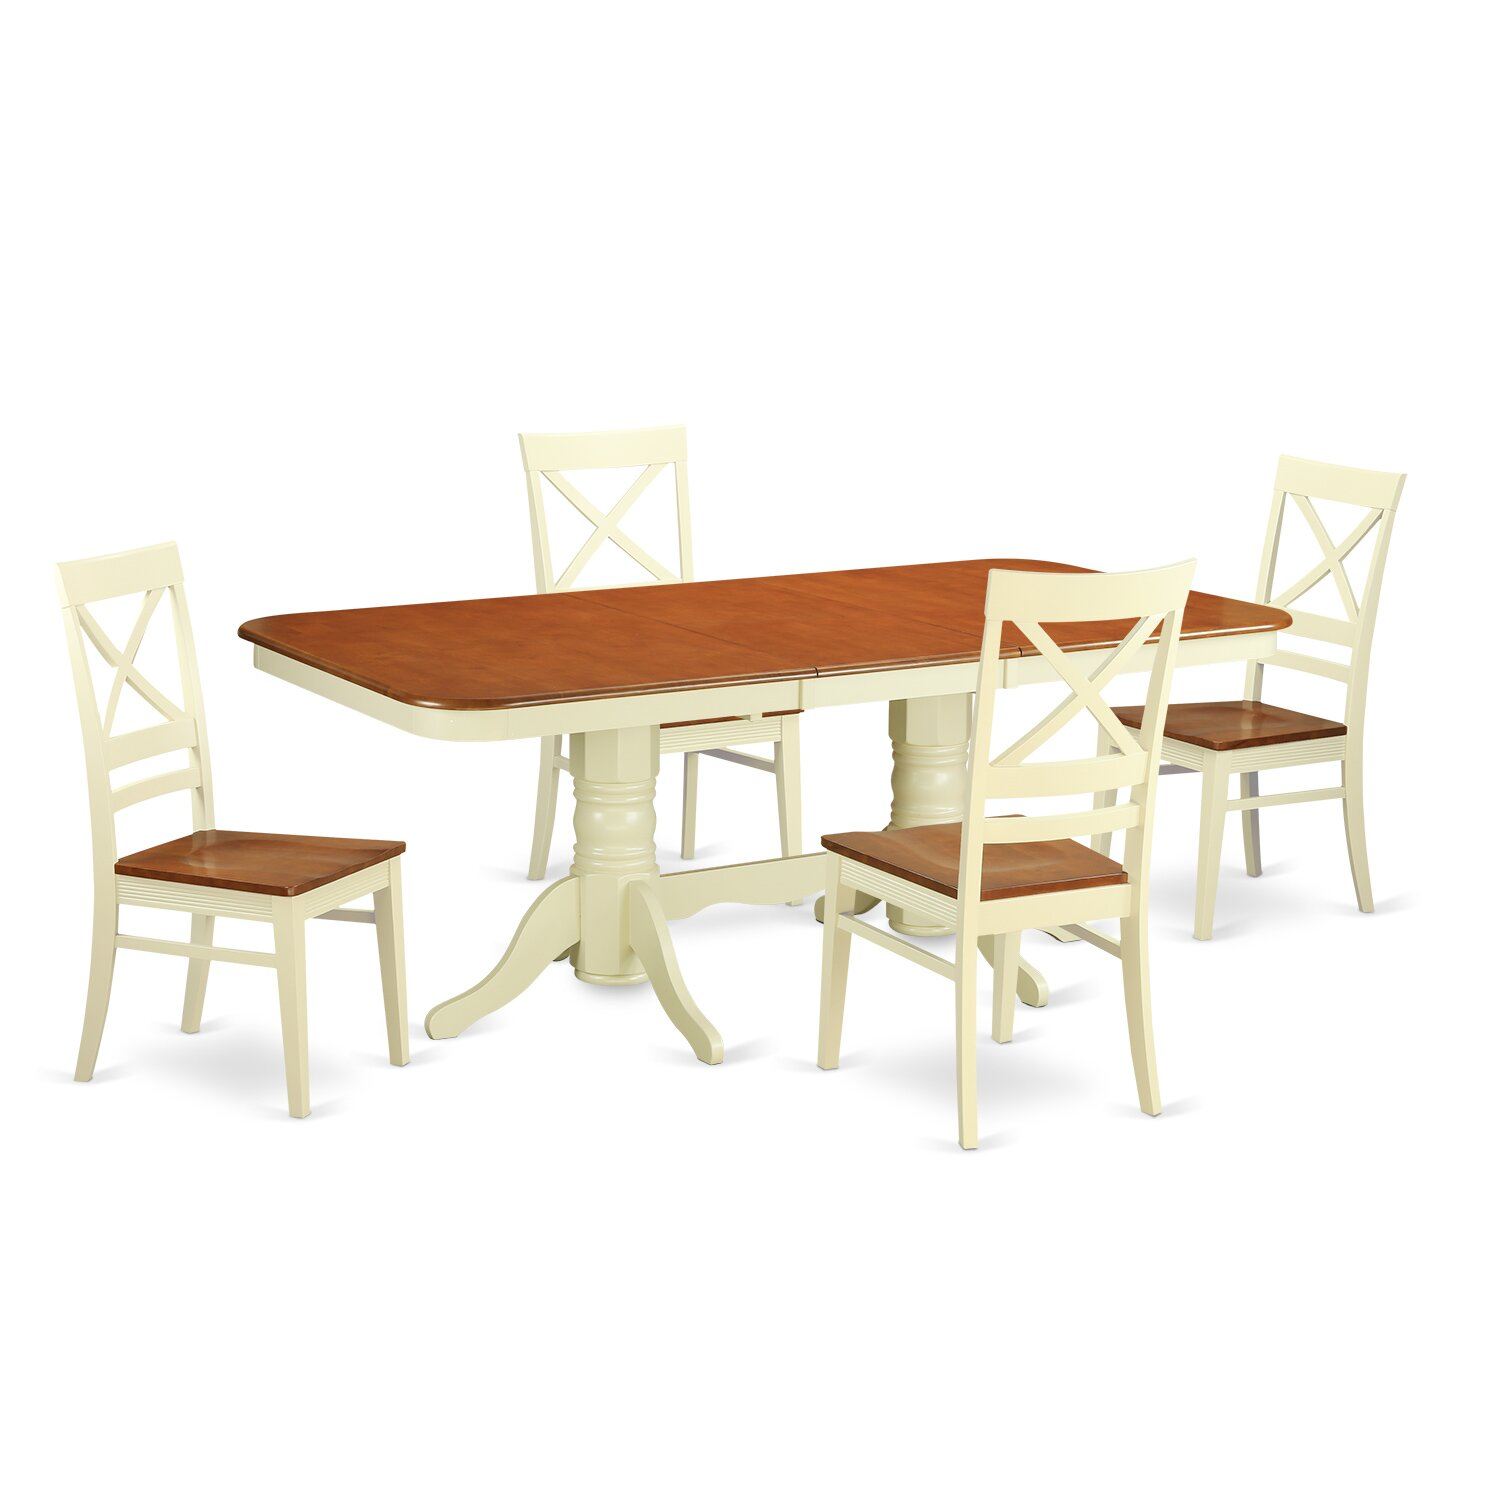 Wooden importers napoleon 5 piece dining set wayfair for Kitchen dinette sets